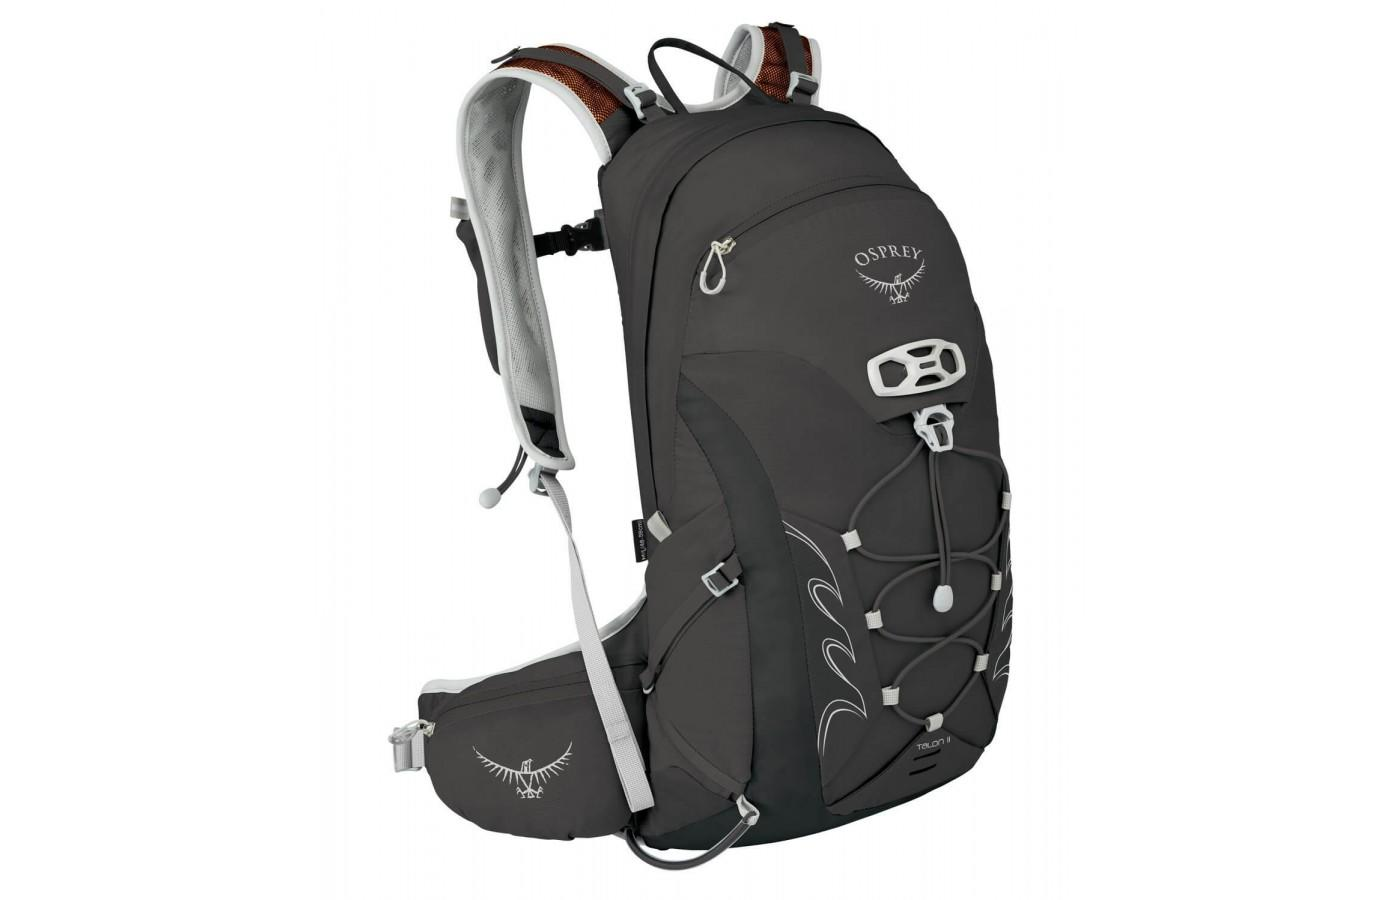 This product features multiple easy to access pockets.